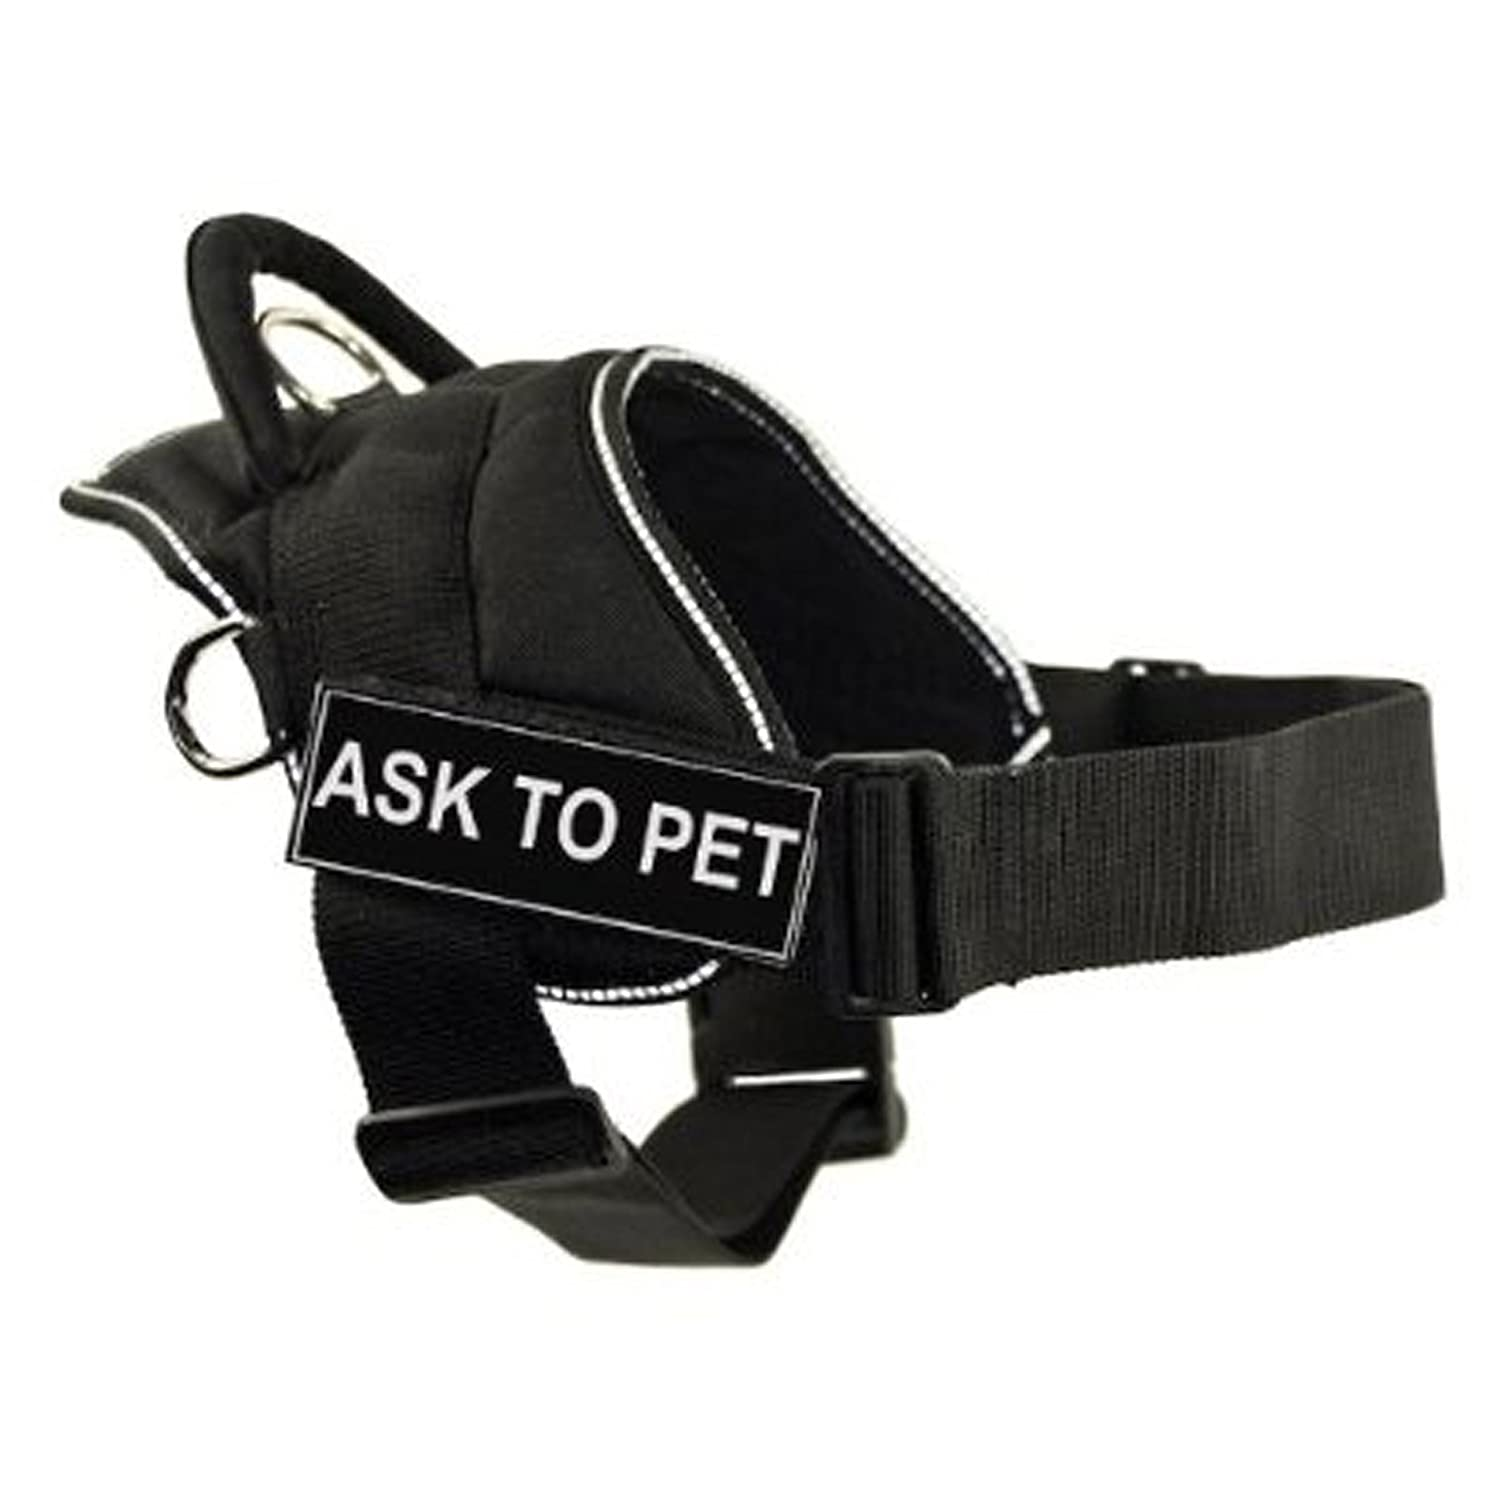 Dean & Tyler DT Fun Works Harness, Ask To Pet, Black with Reflective Trim, X-Small Fits Girth Size  20-Inch to 23-Inch